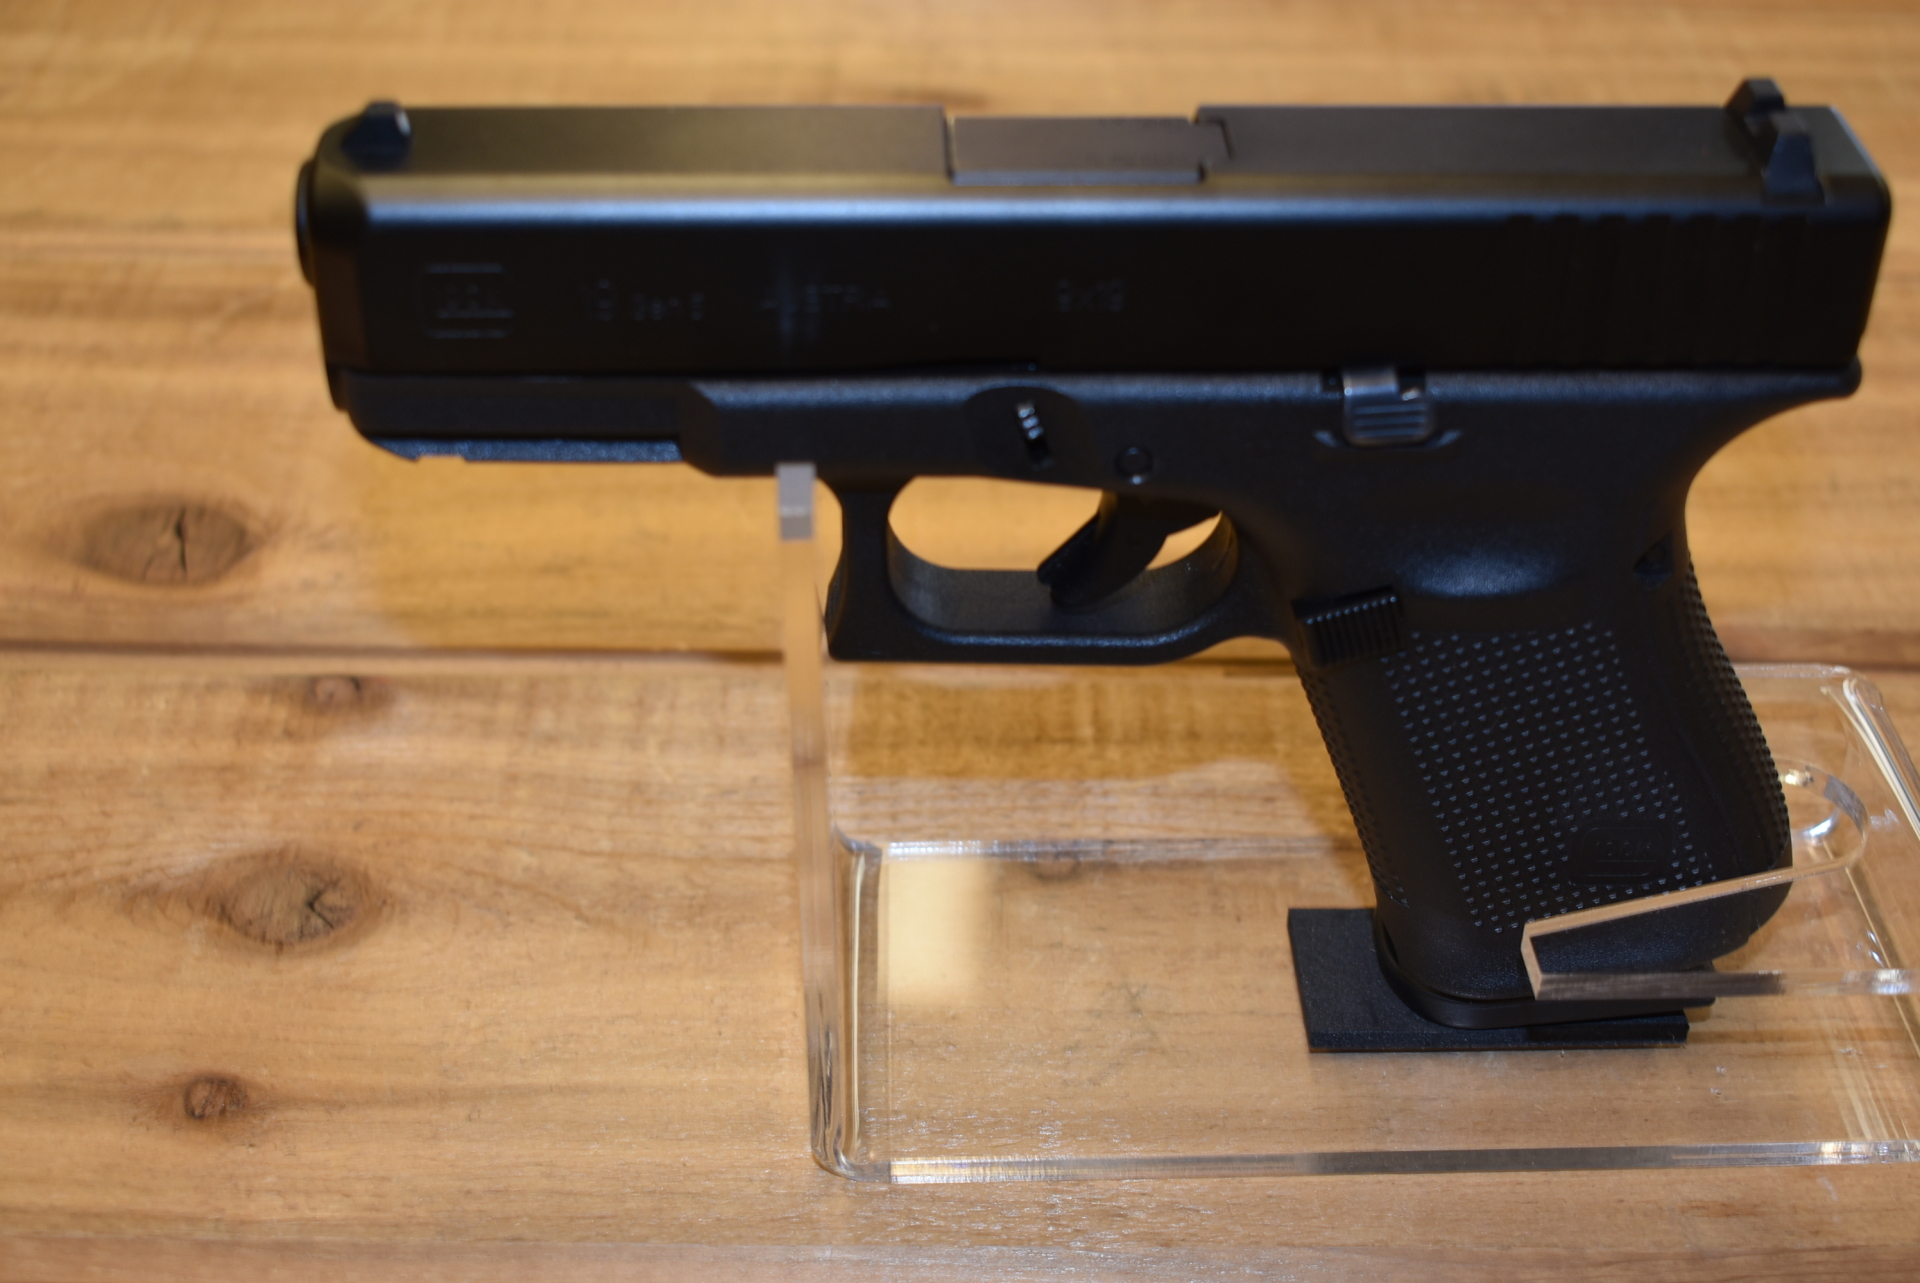 Glock Model 19 5th Gen